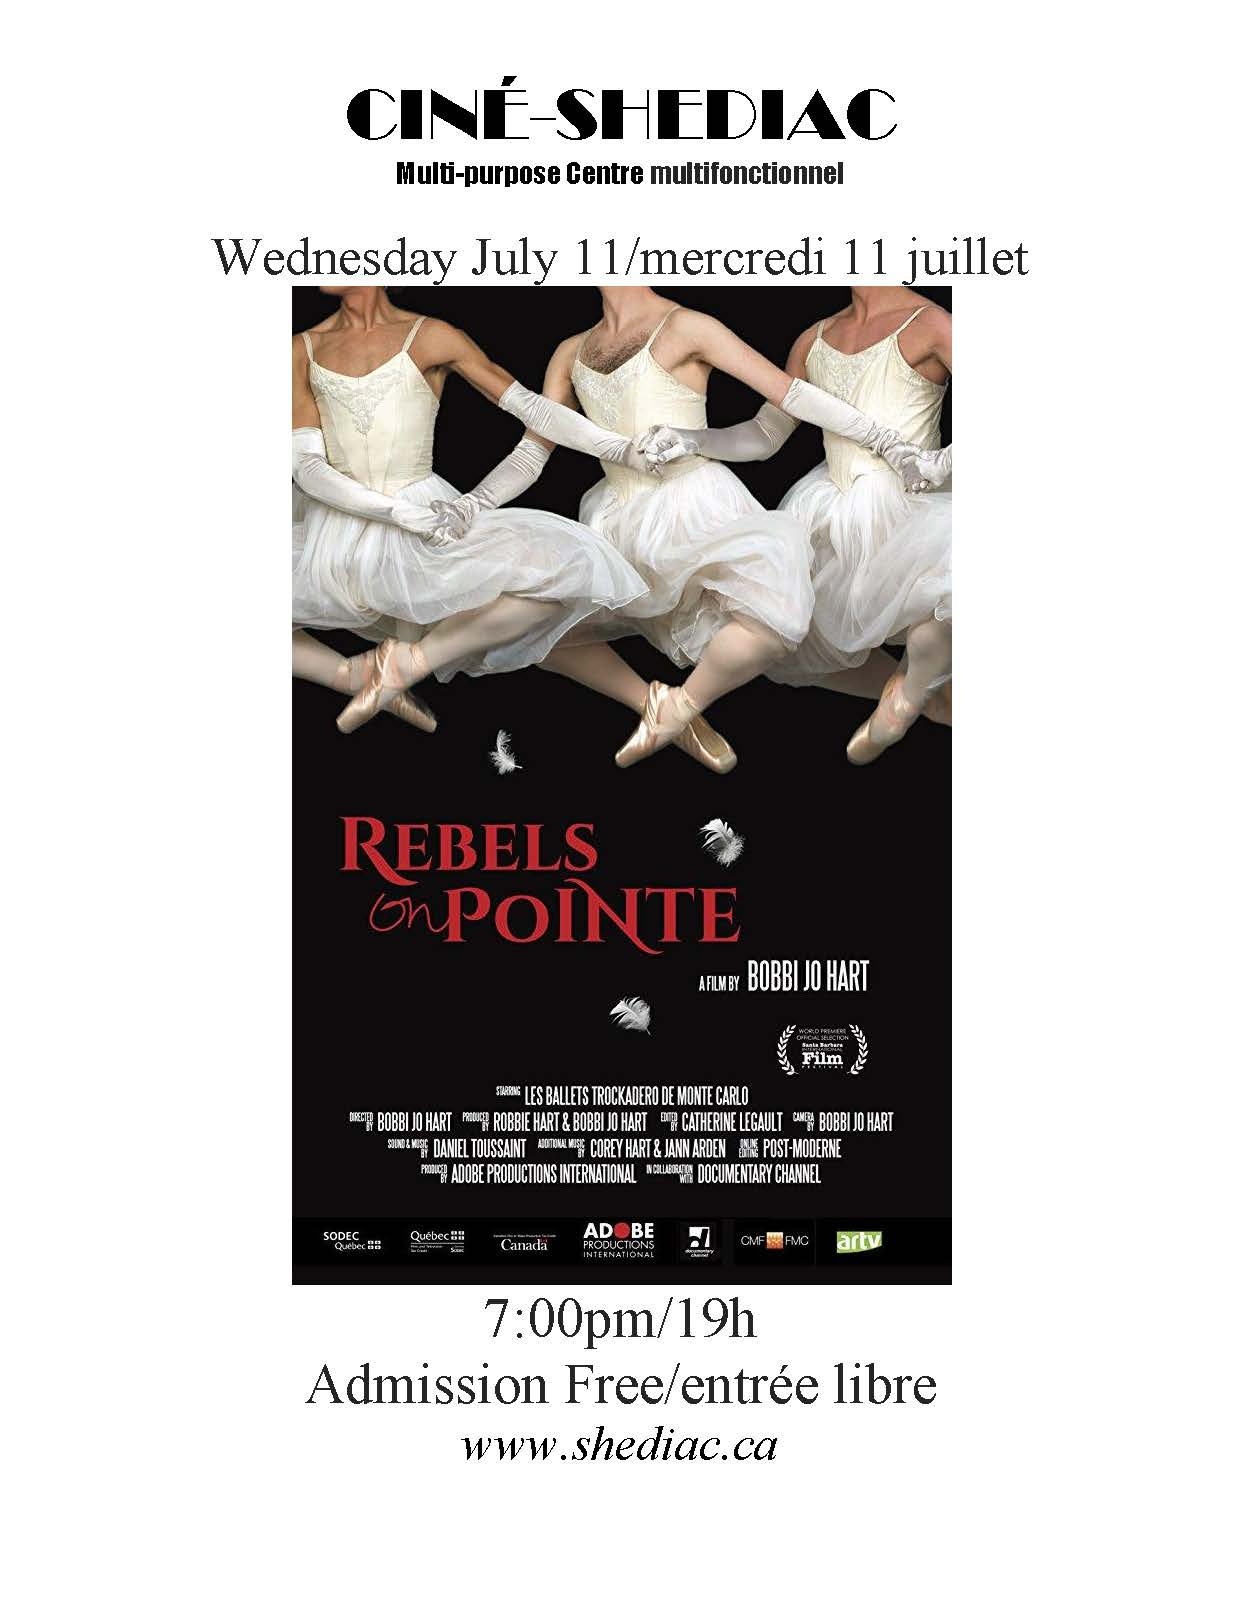 rebels on pointe July 11